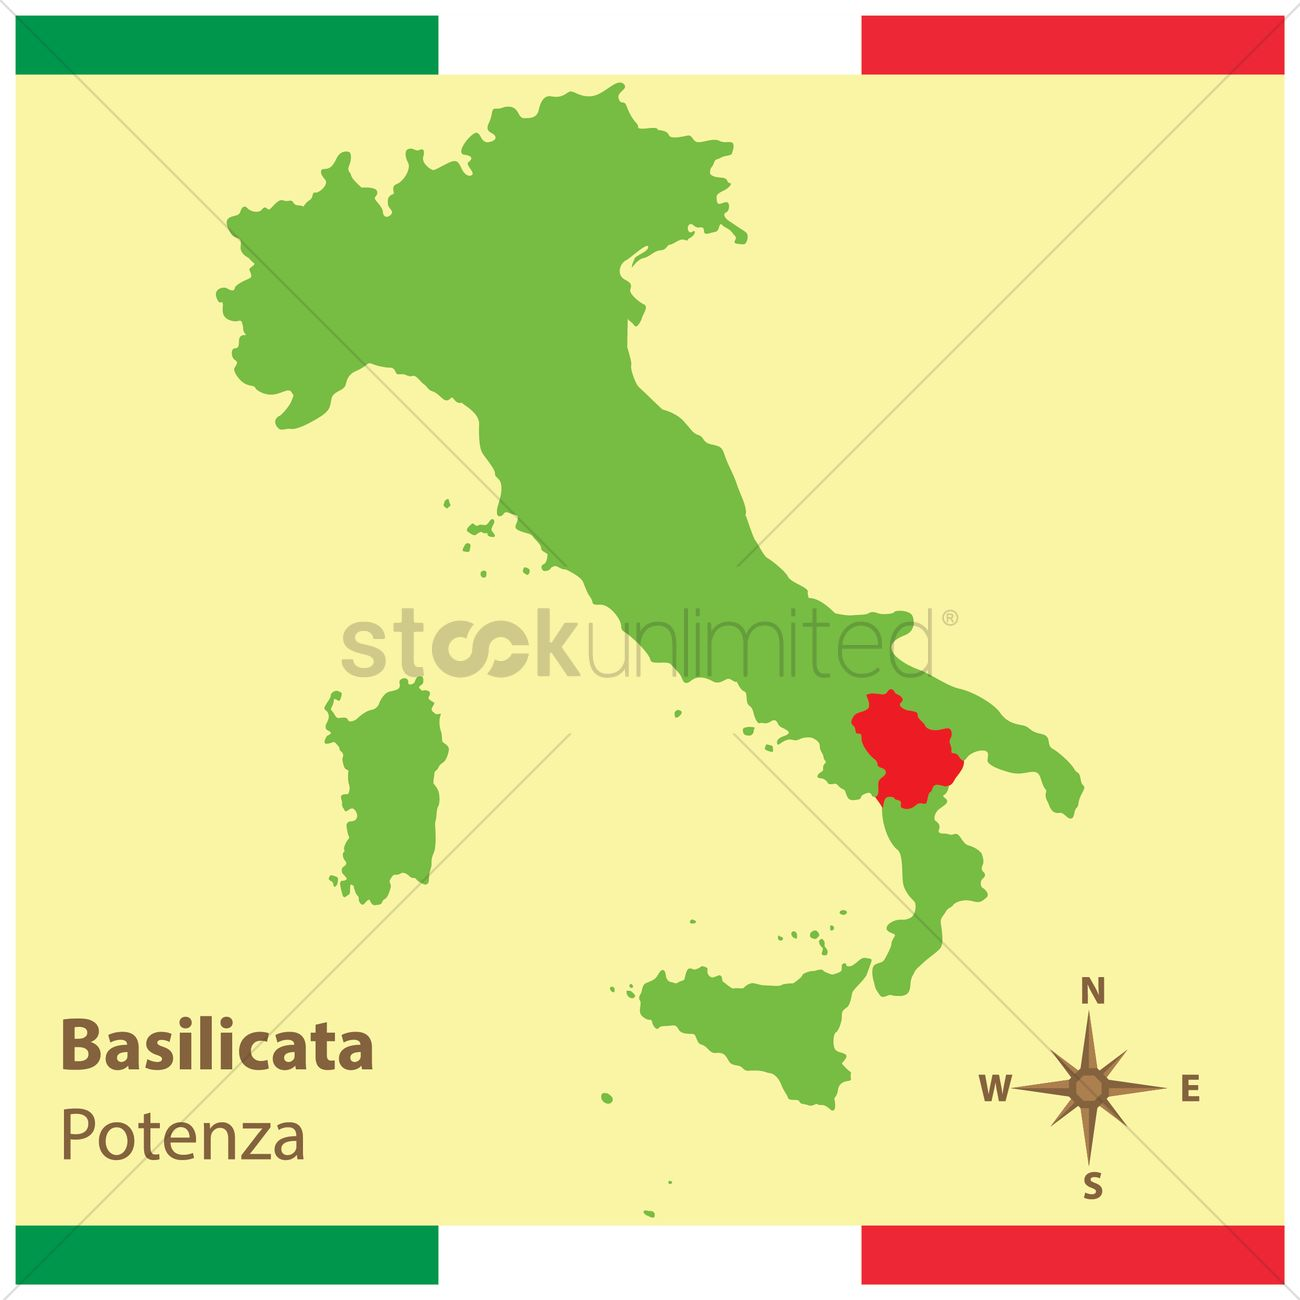 Basilicata on italy map Vector Image 1583951 StockUnlimited